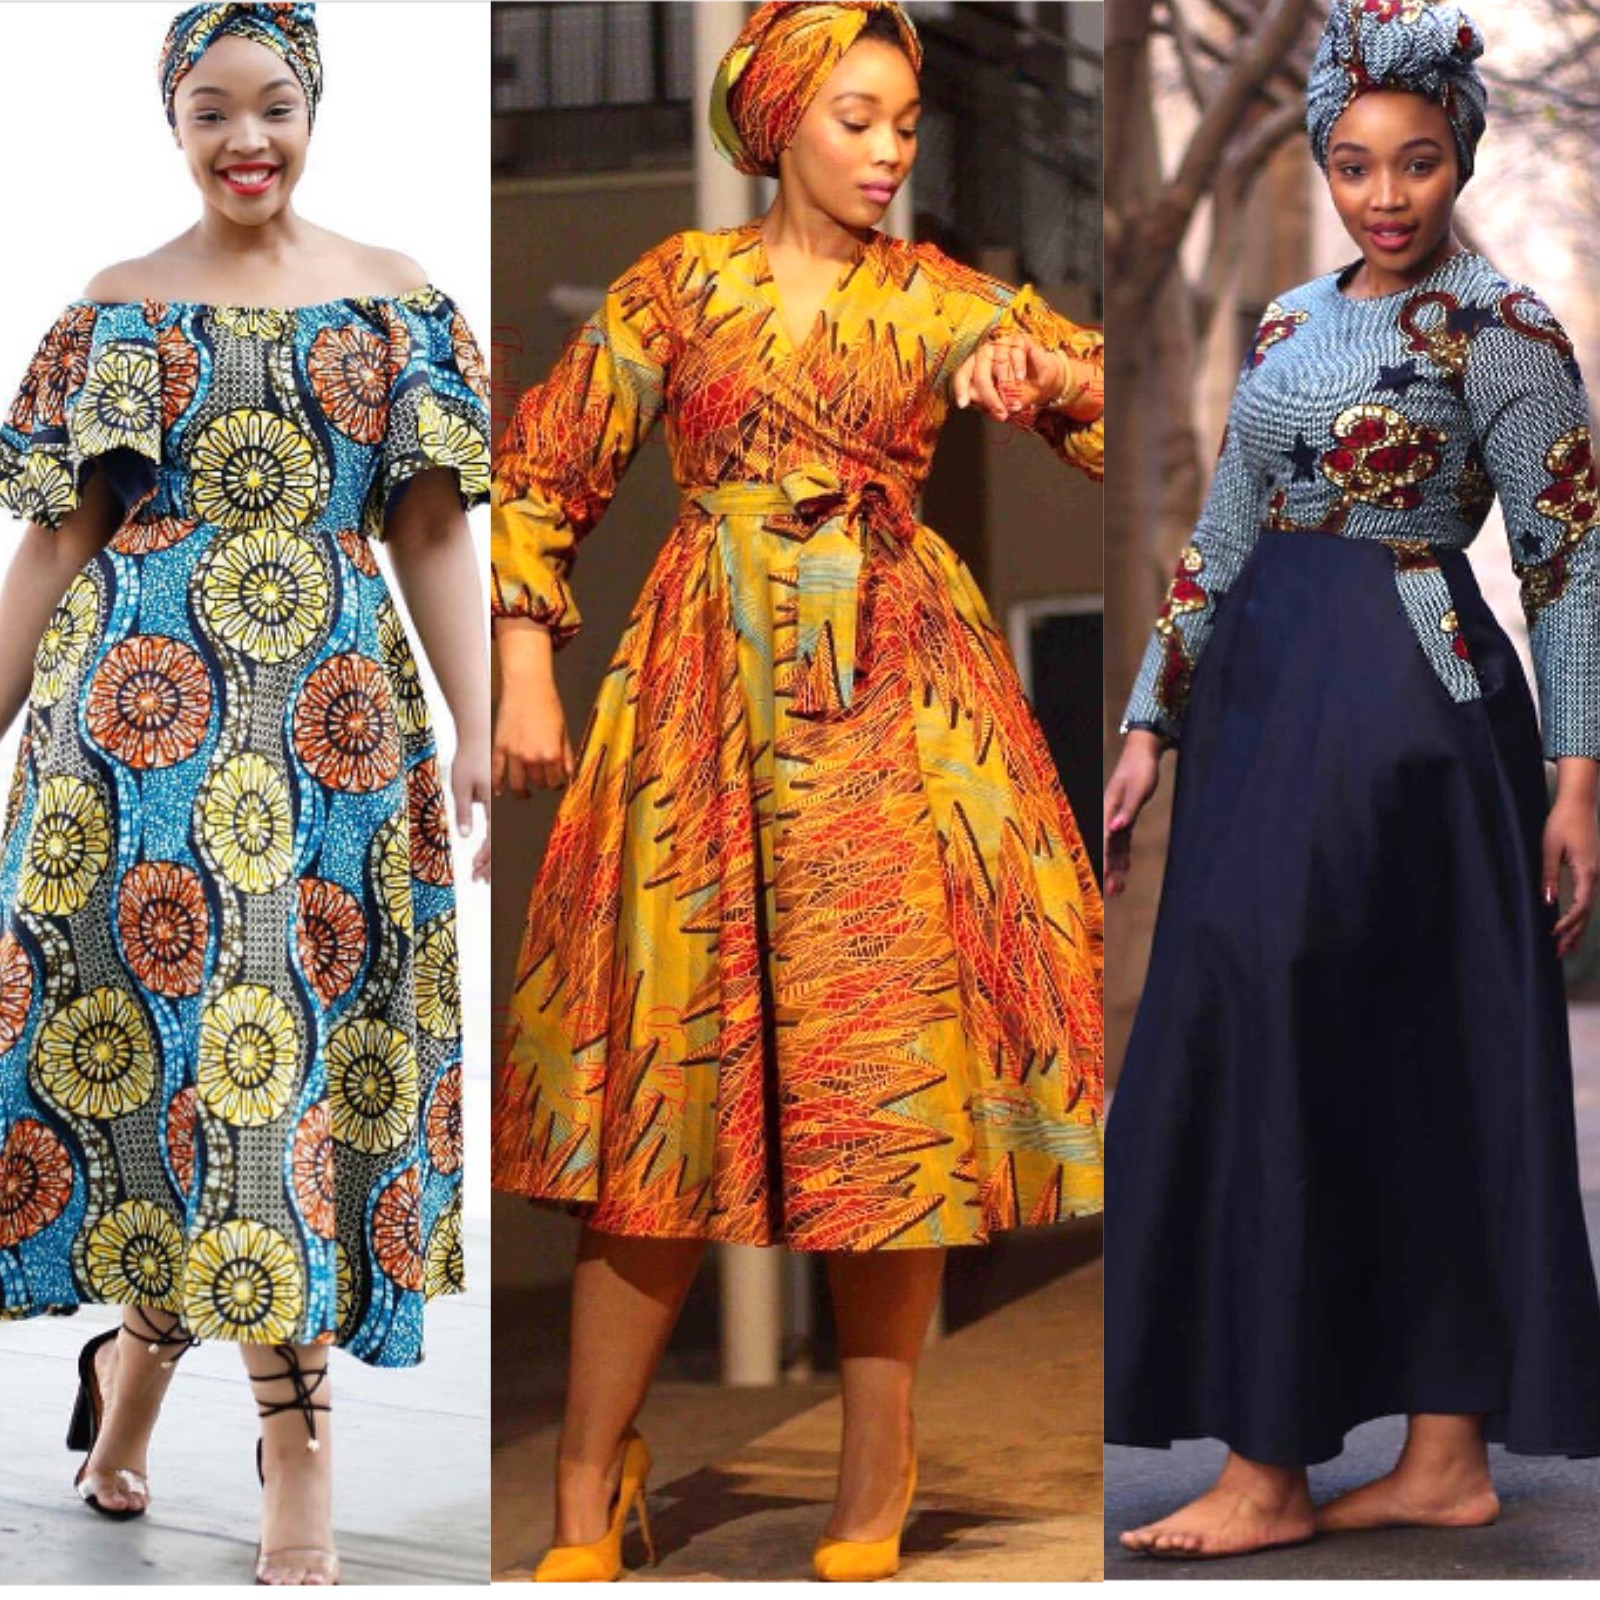 KITENGE FASHION Dresses Ideas You Might Love!